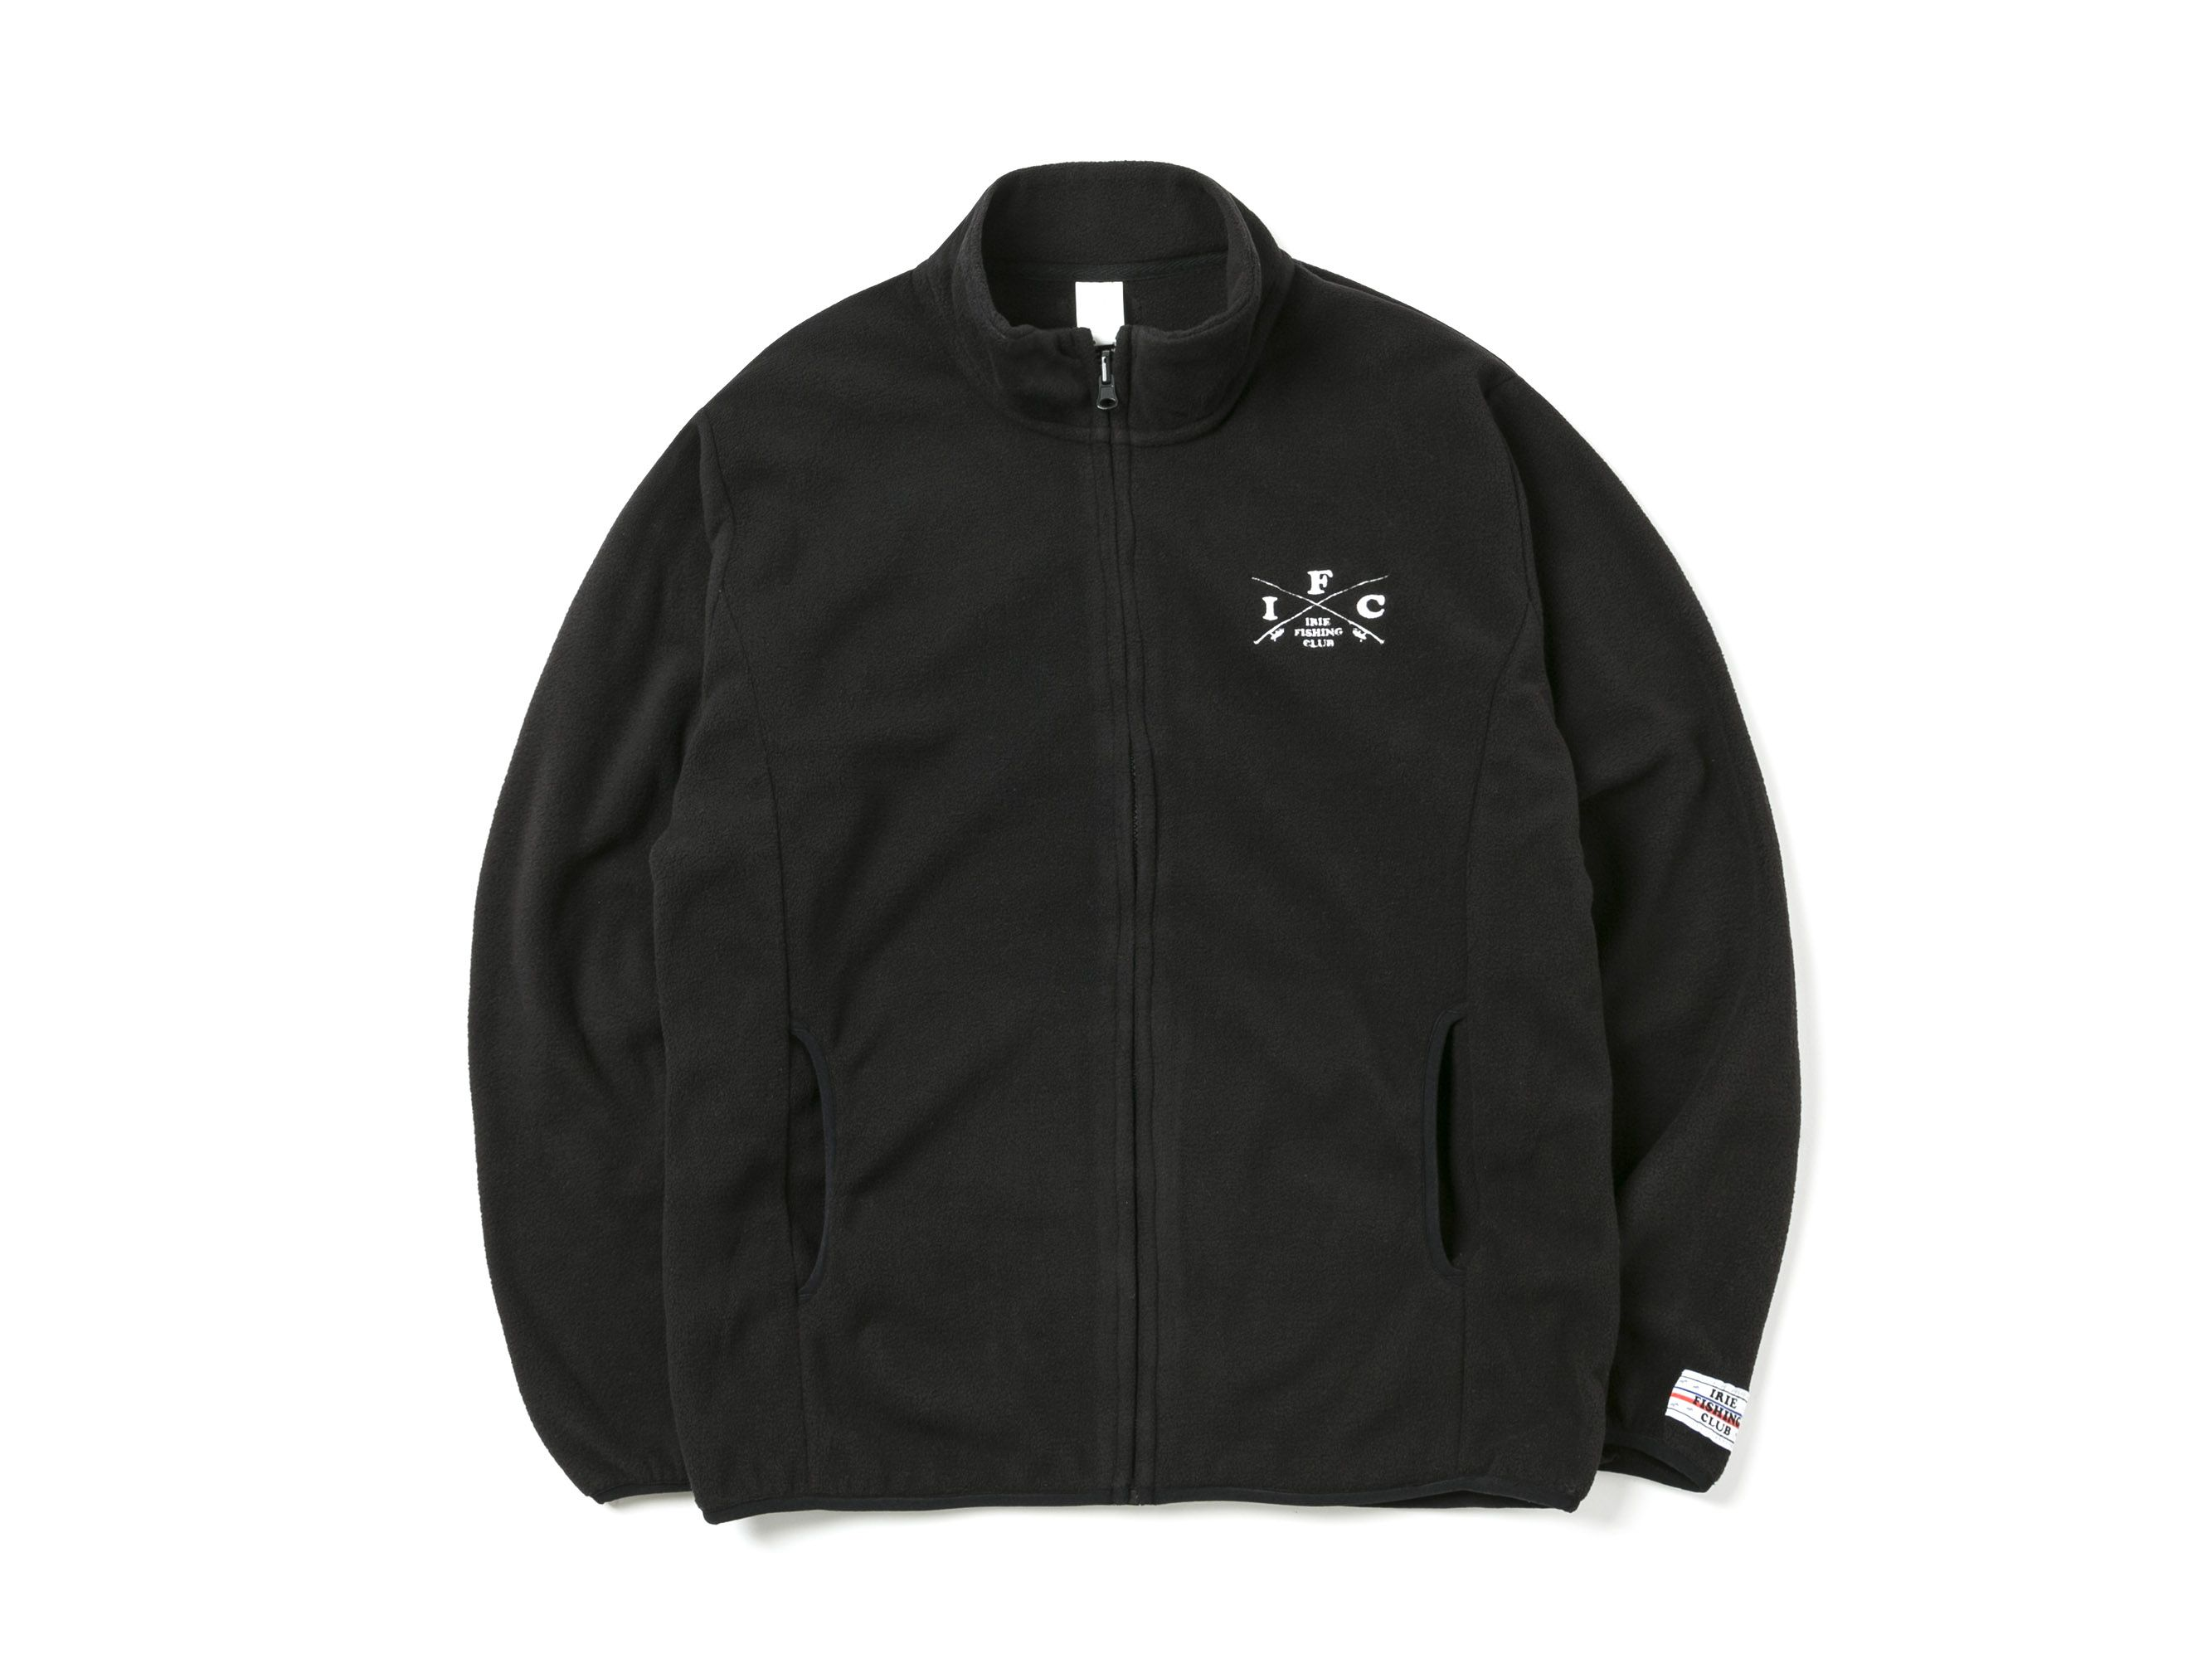 CROSS ROD FLEECE JACKET -IRIE FISHING CLUB-